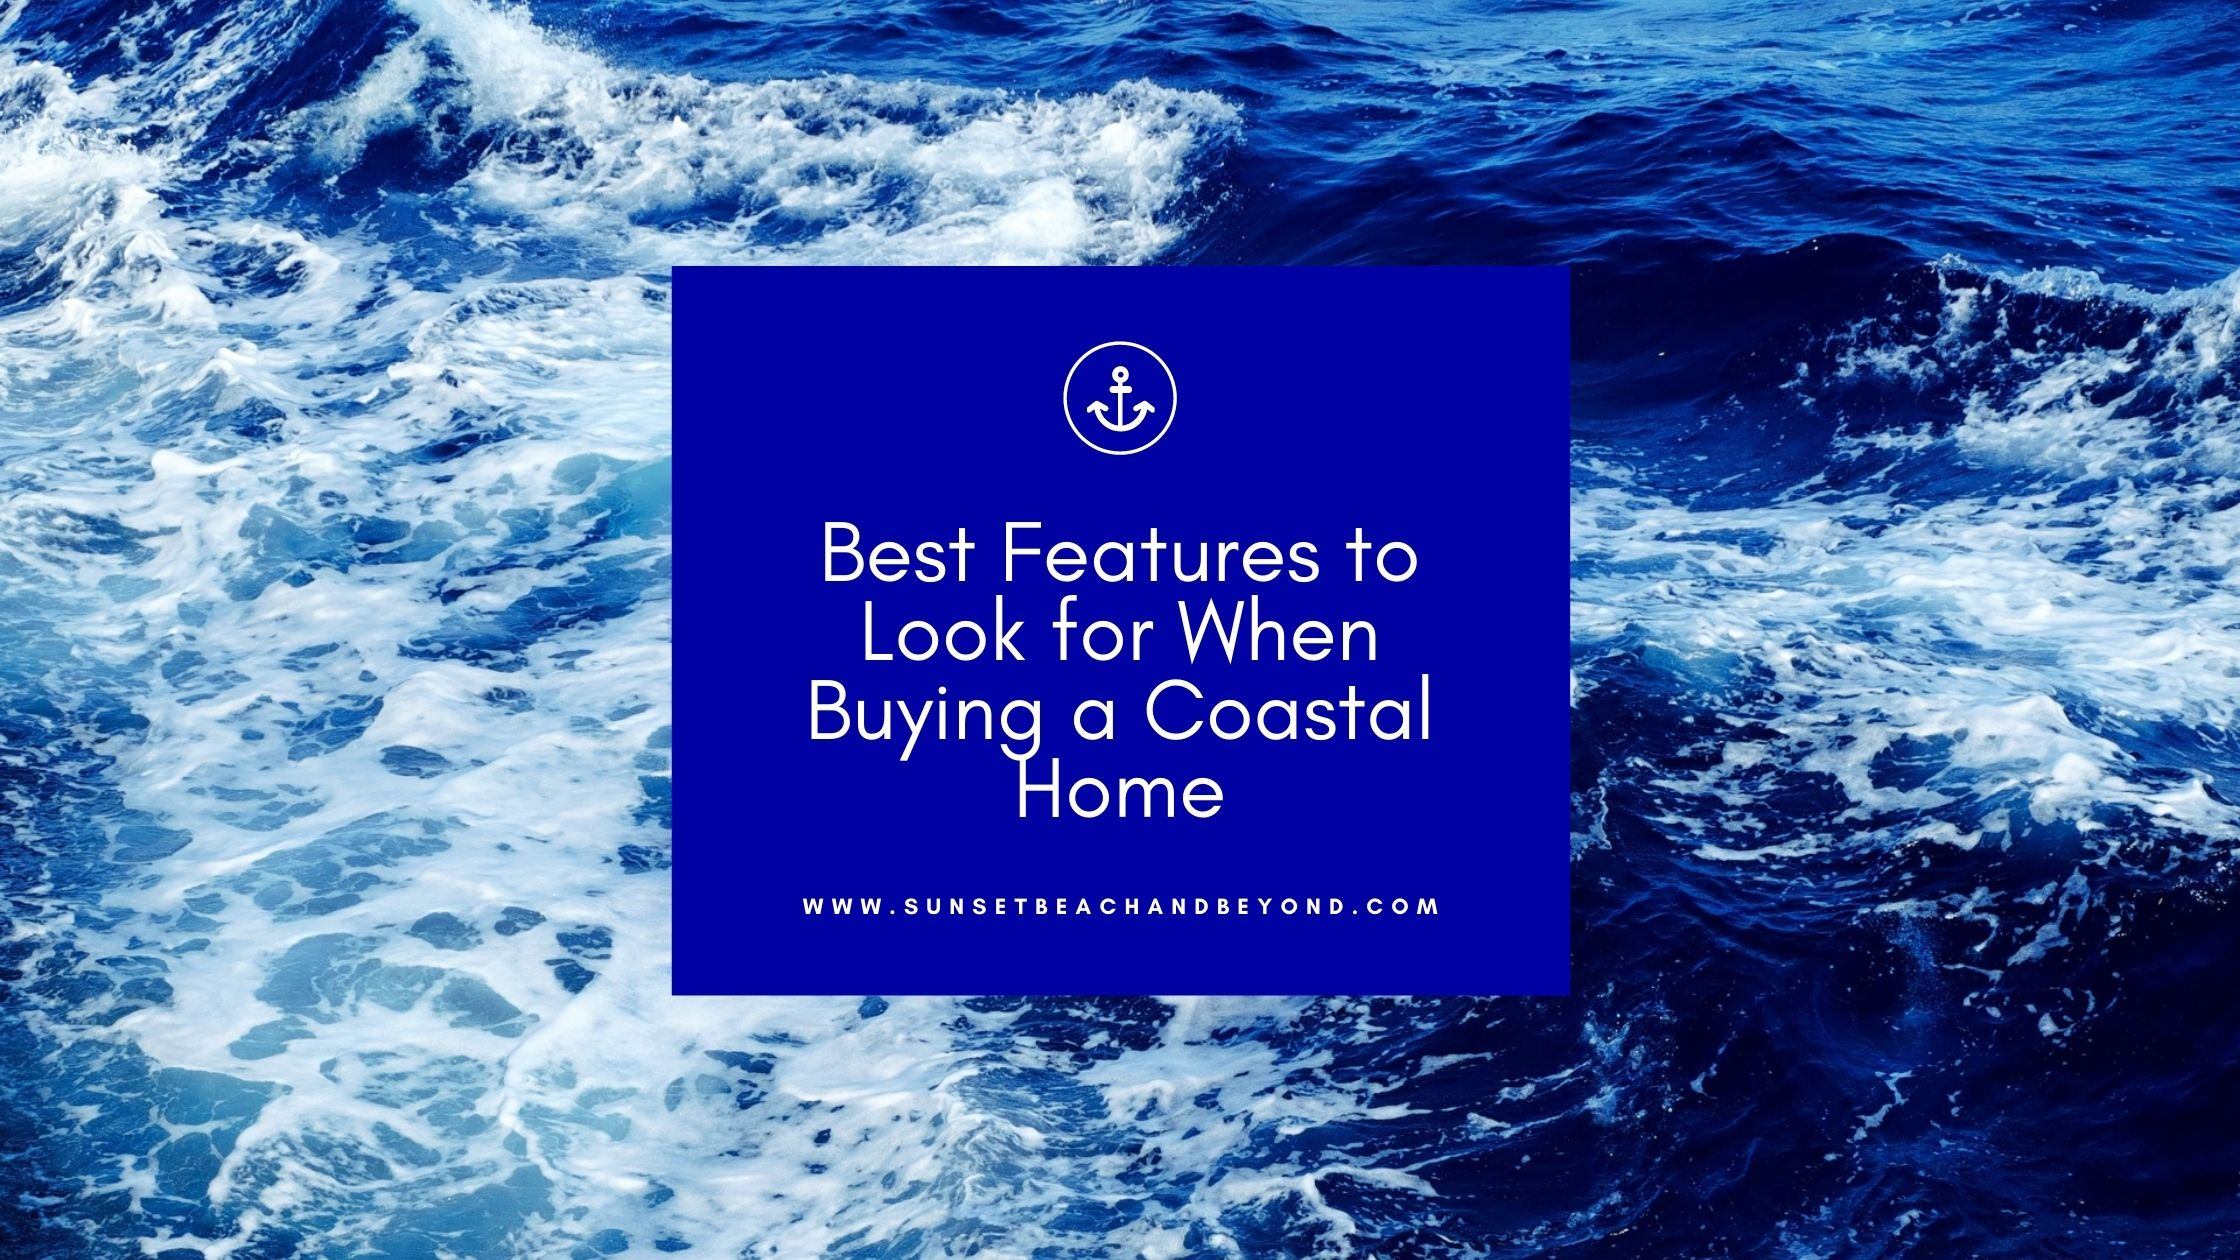 Best Features to Look for When Buying a Coastal Home